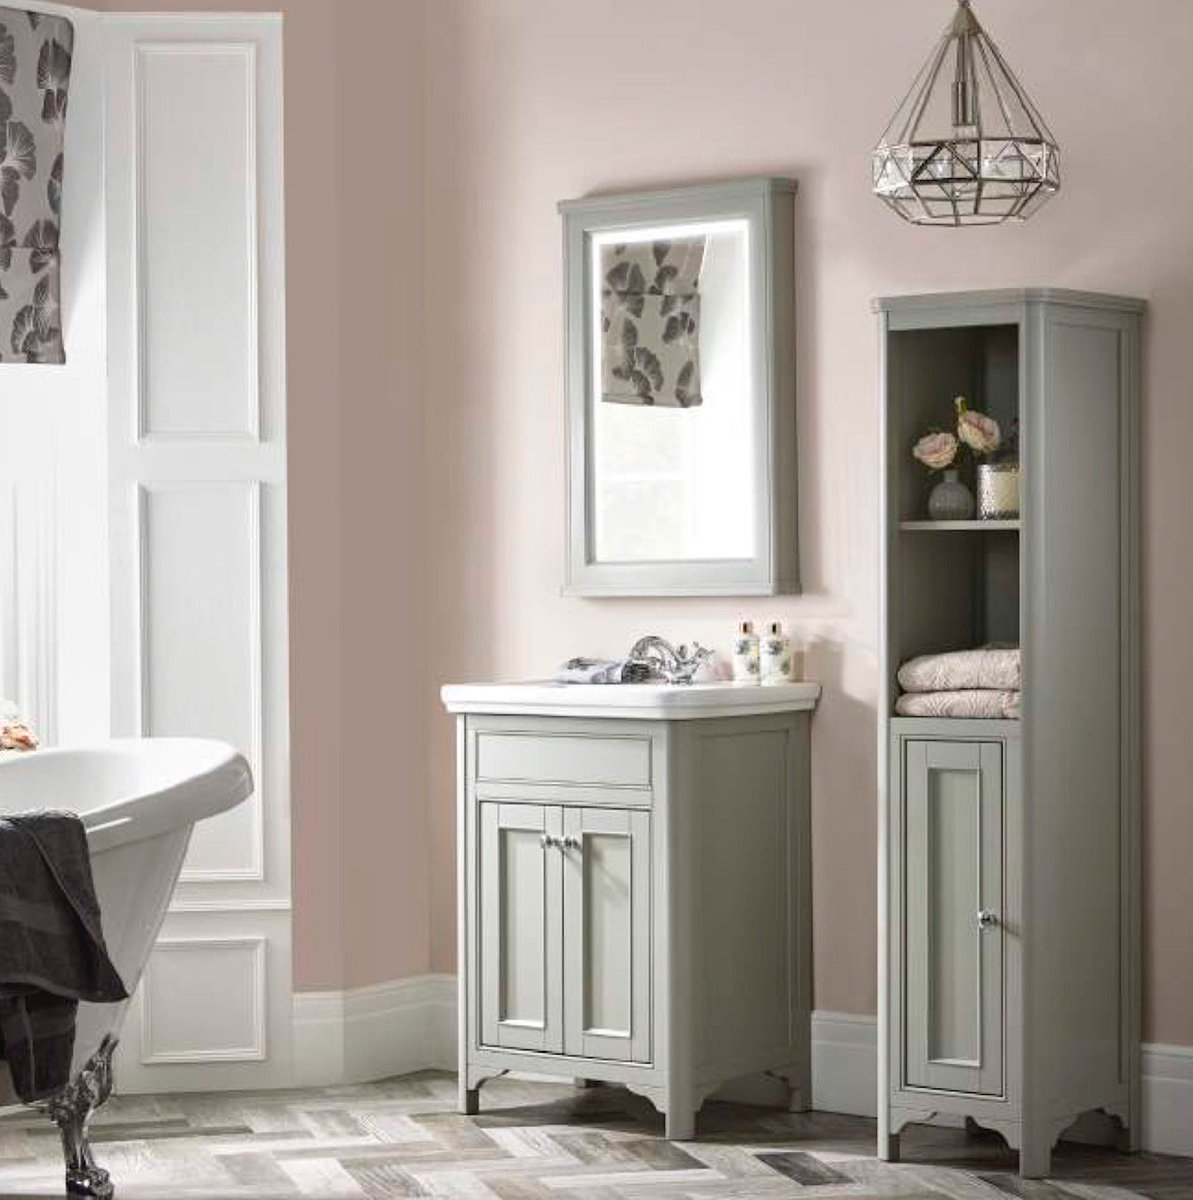 Nostalgische Badezimmer Accessoires Lauraashleybathroomcollection Hashtag On Twitter